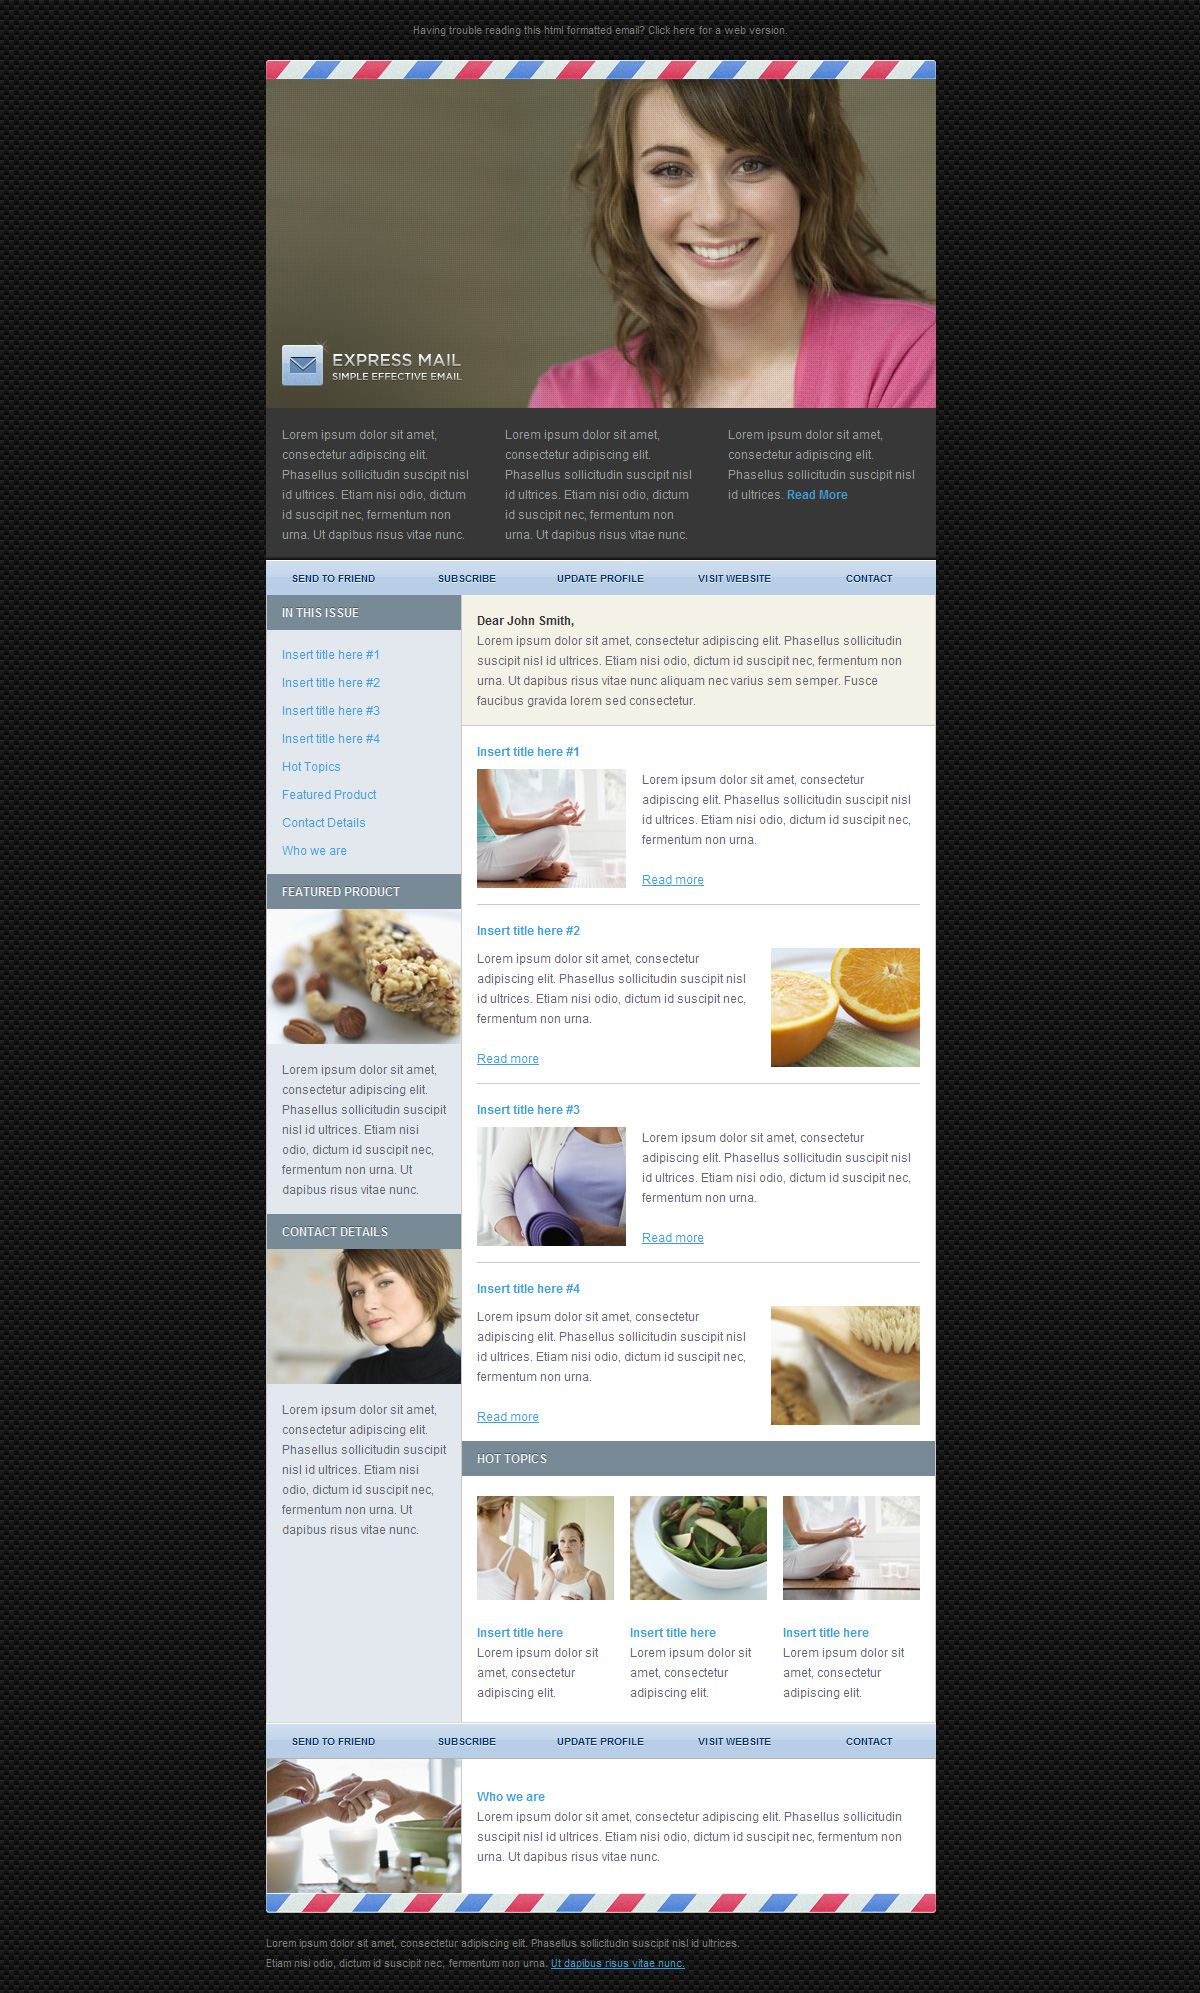 Express Mail Newsletter Template (5 Themes) - Screenshot 05 - Sleek